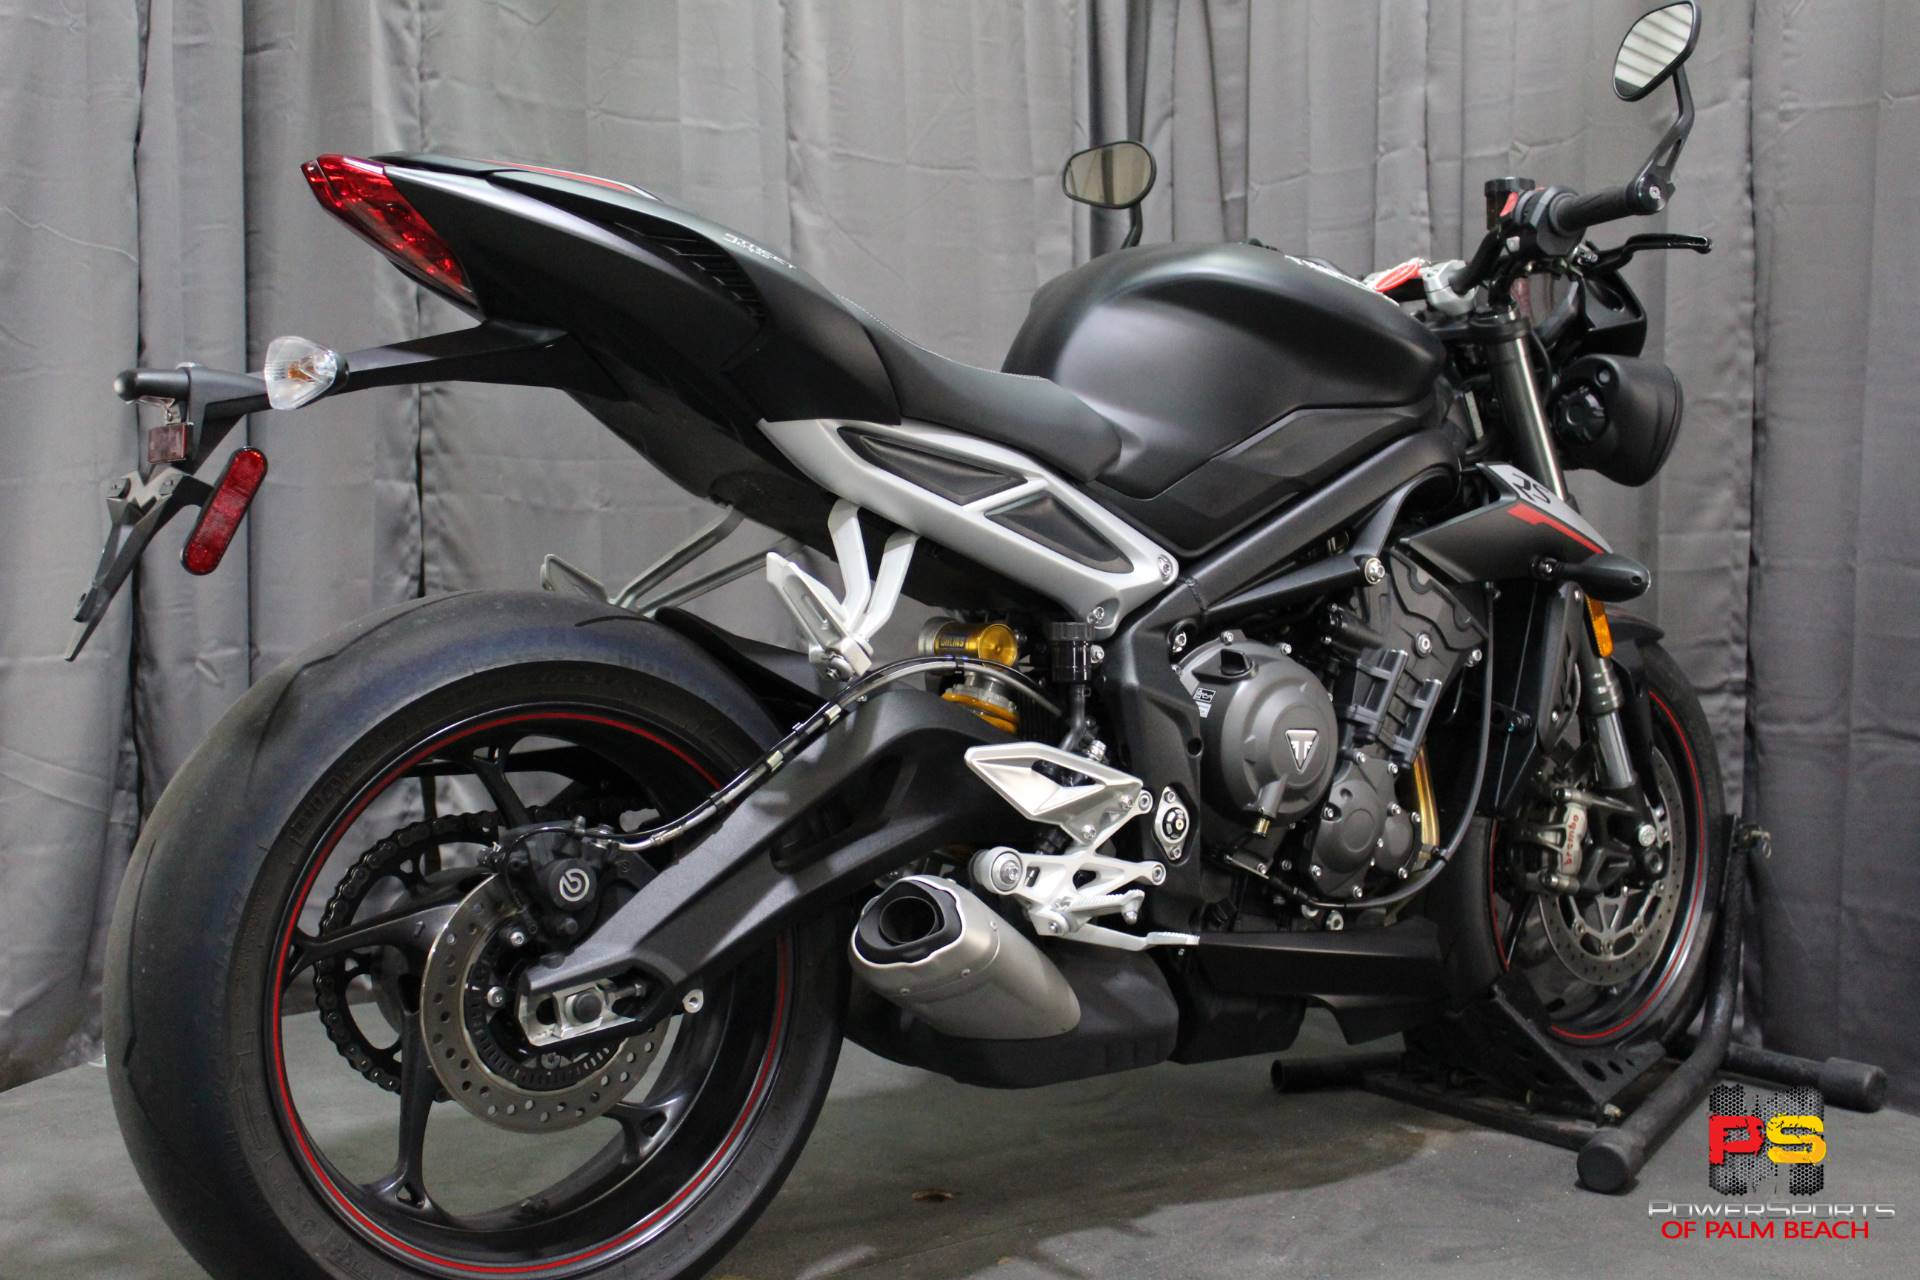 New 2019 Triumph Street Triple RS Motorcycles in